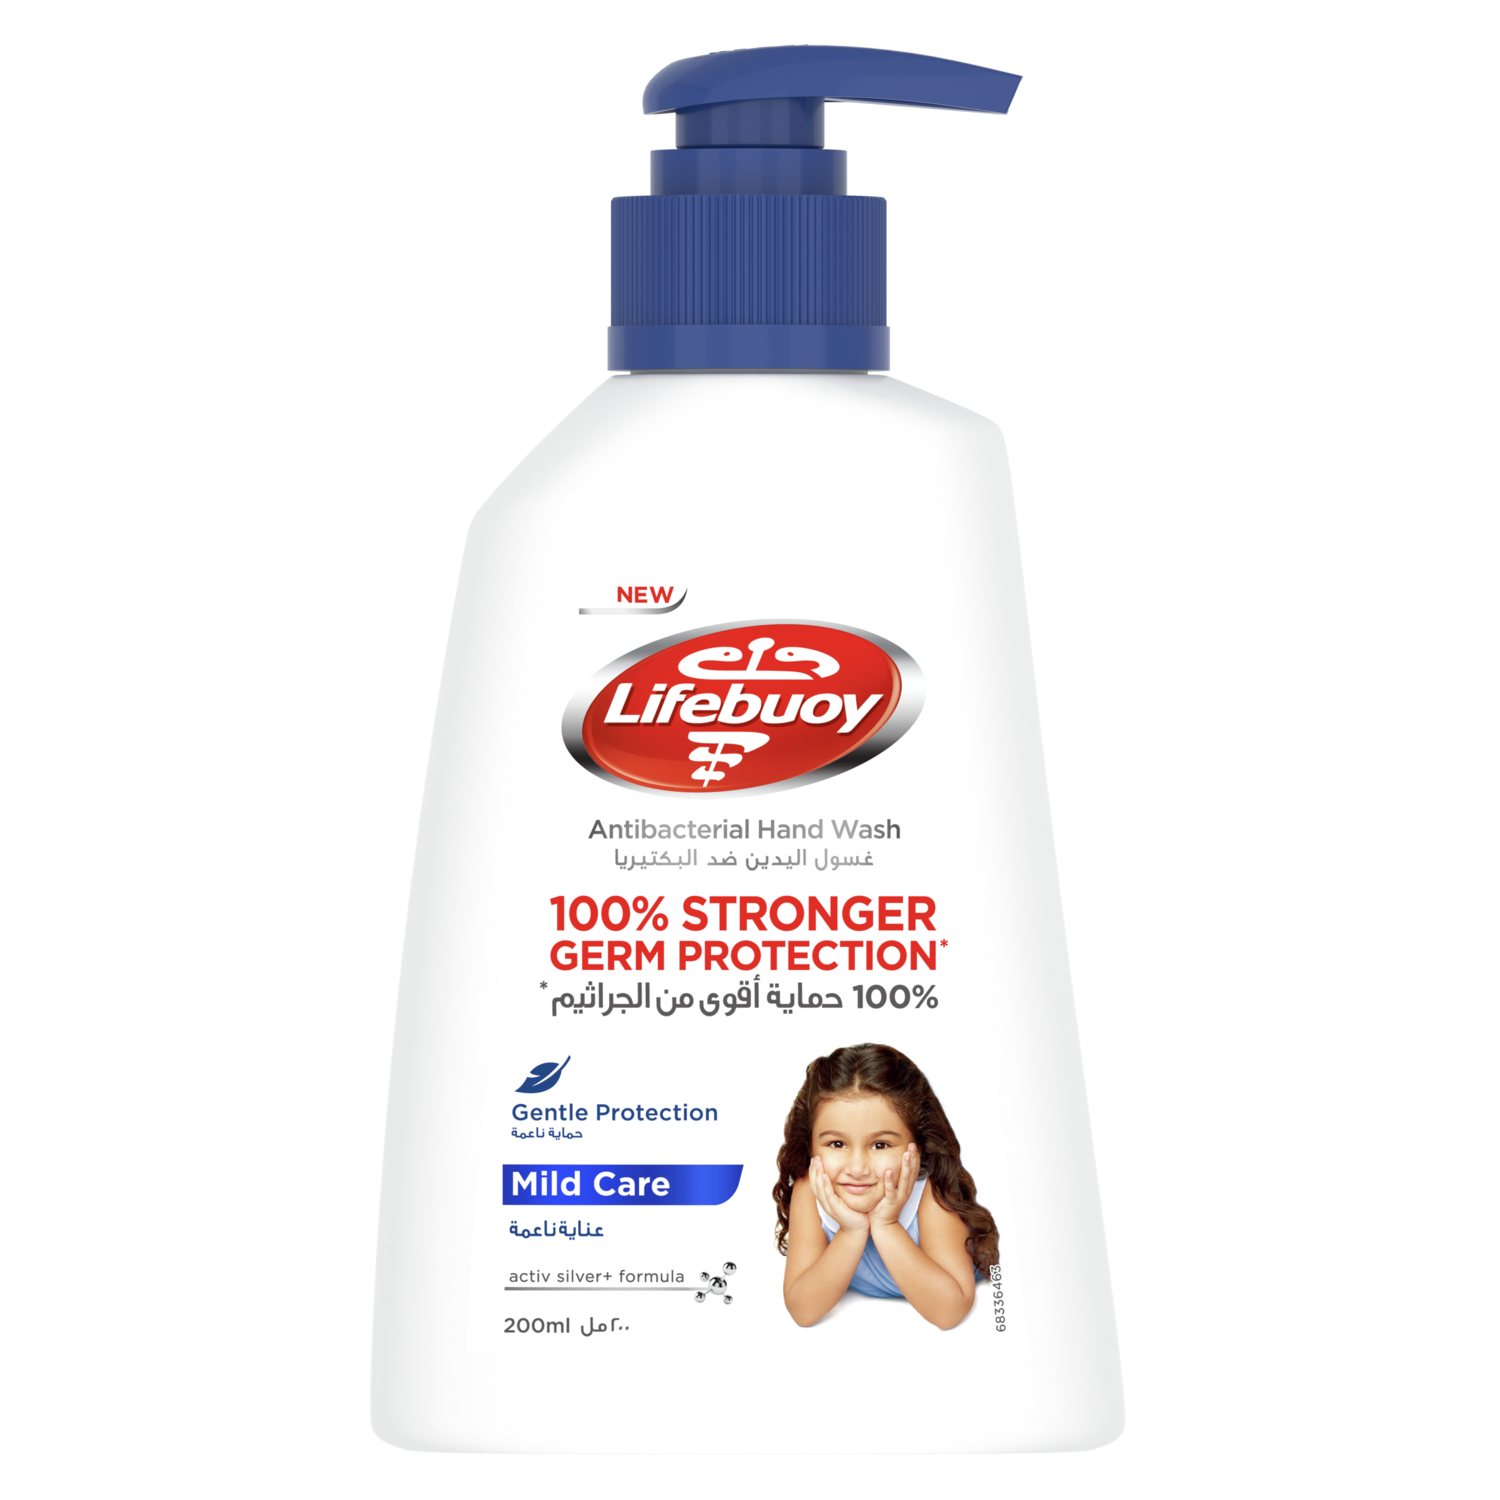 Lifebuoy Handwash Mild Care Label 200ml